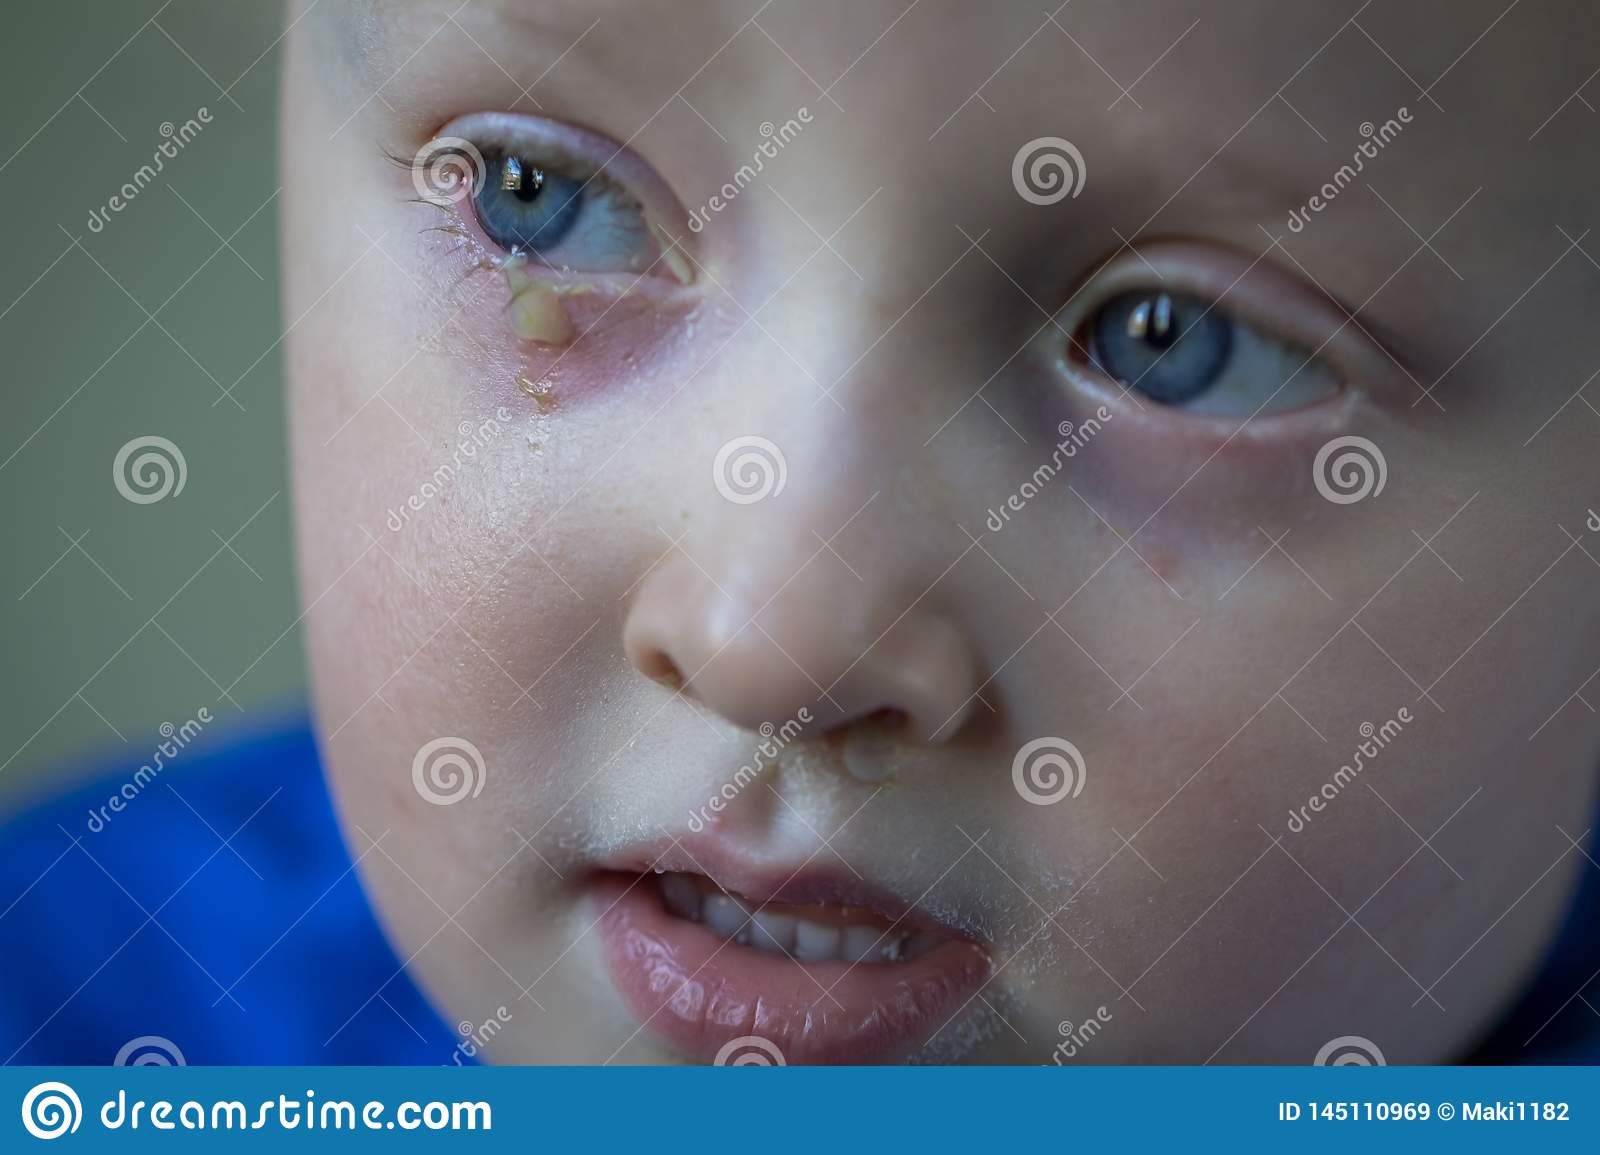 Child with purulent conjunctivitis, contagious eye infection. Symptoms and treatment concept. Close up